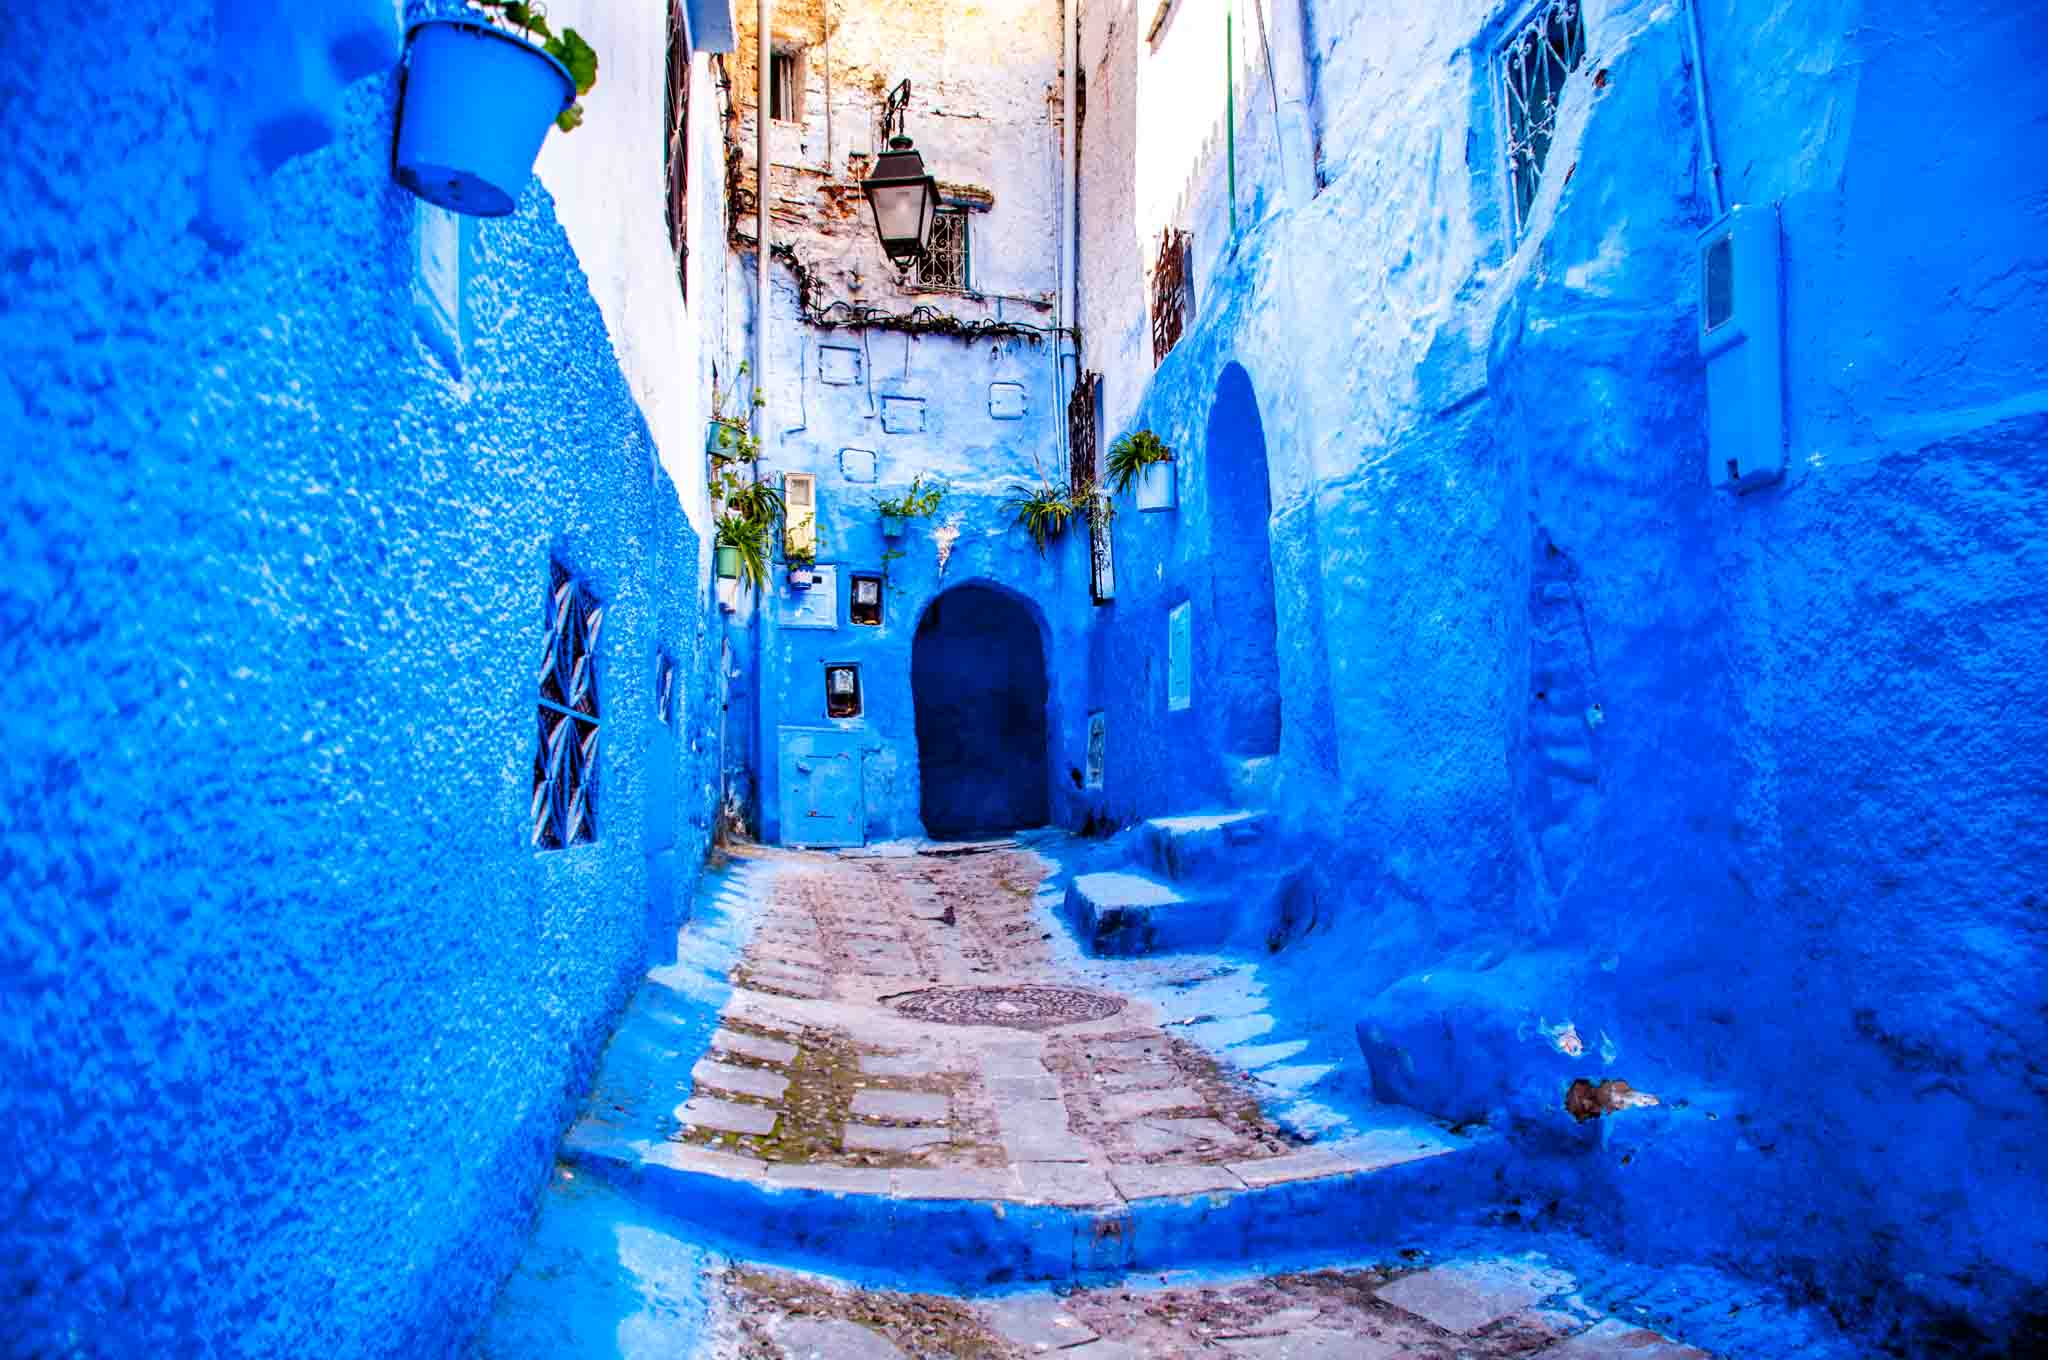 Alleyway in the Blue Pearl, Chefchaouen, Morocco